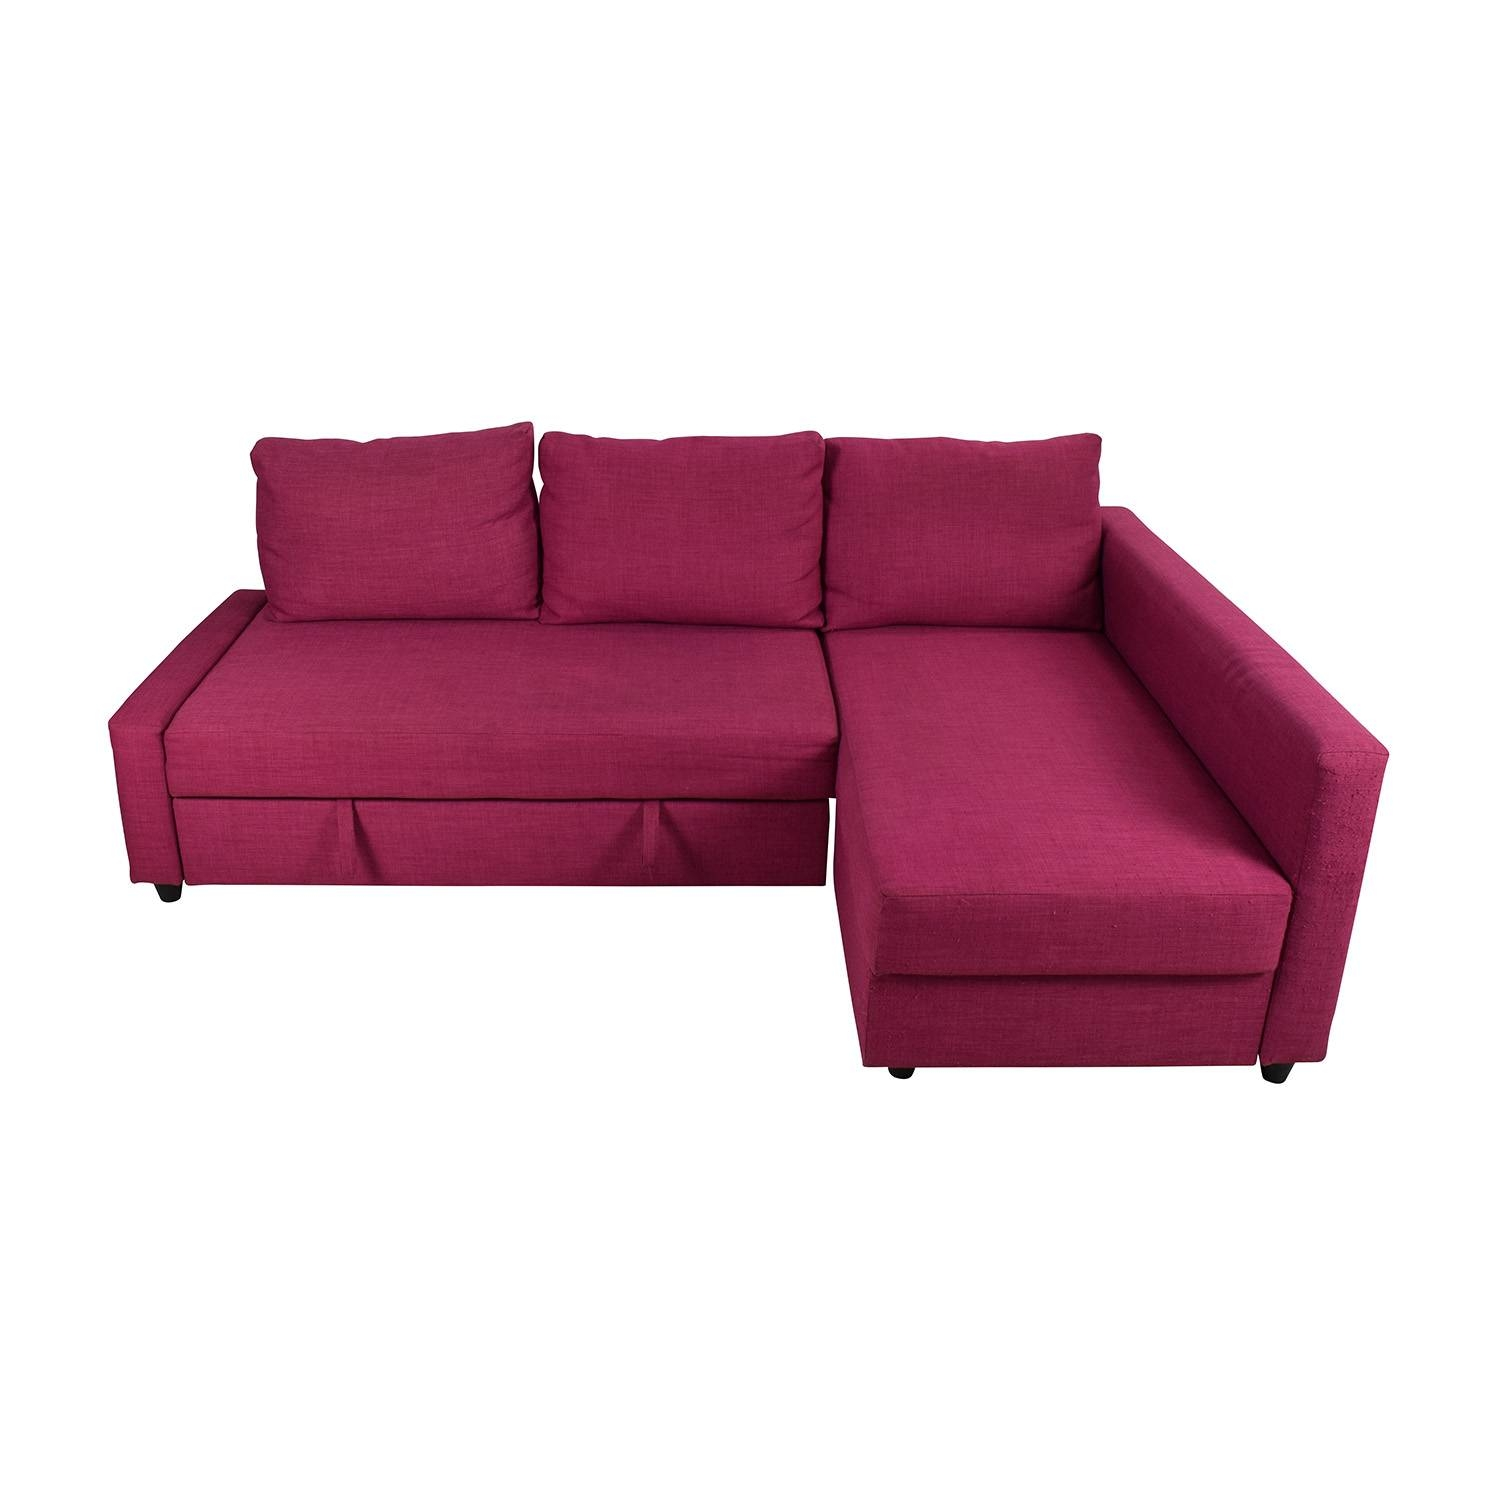 Furniture: Fancy Sleeper Sofa Ikea For Your Best Living Room for Red Sectional Sleeper Sofas (Image 12 of 30)